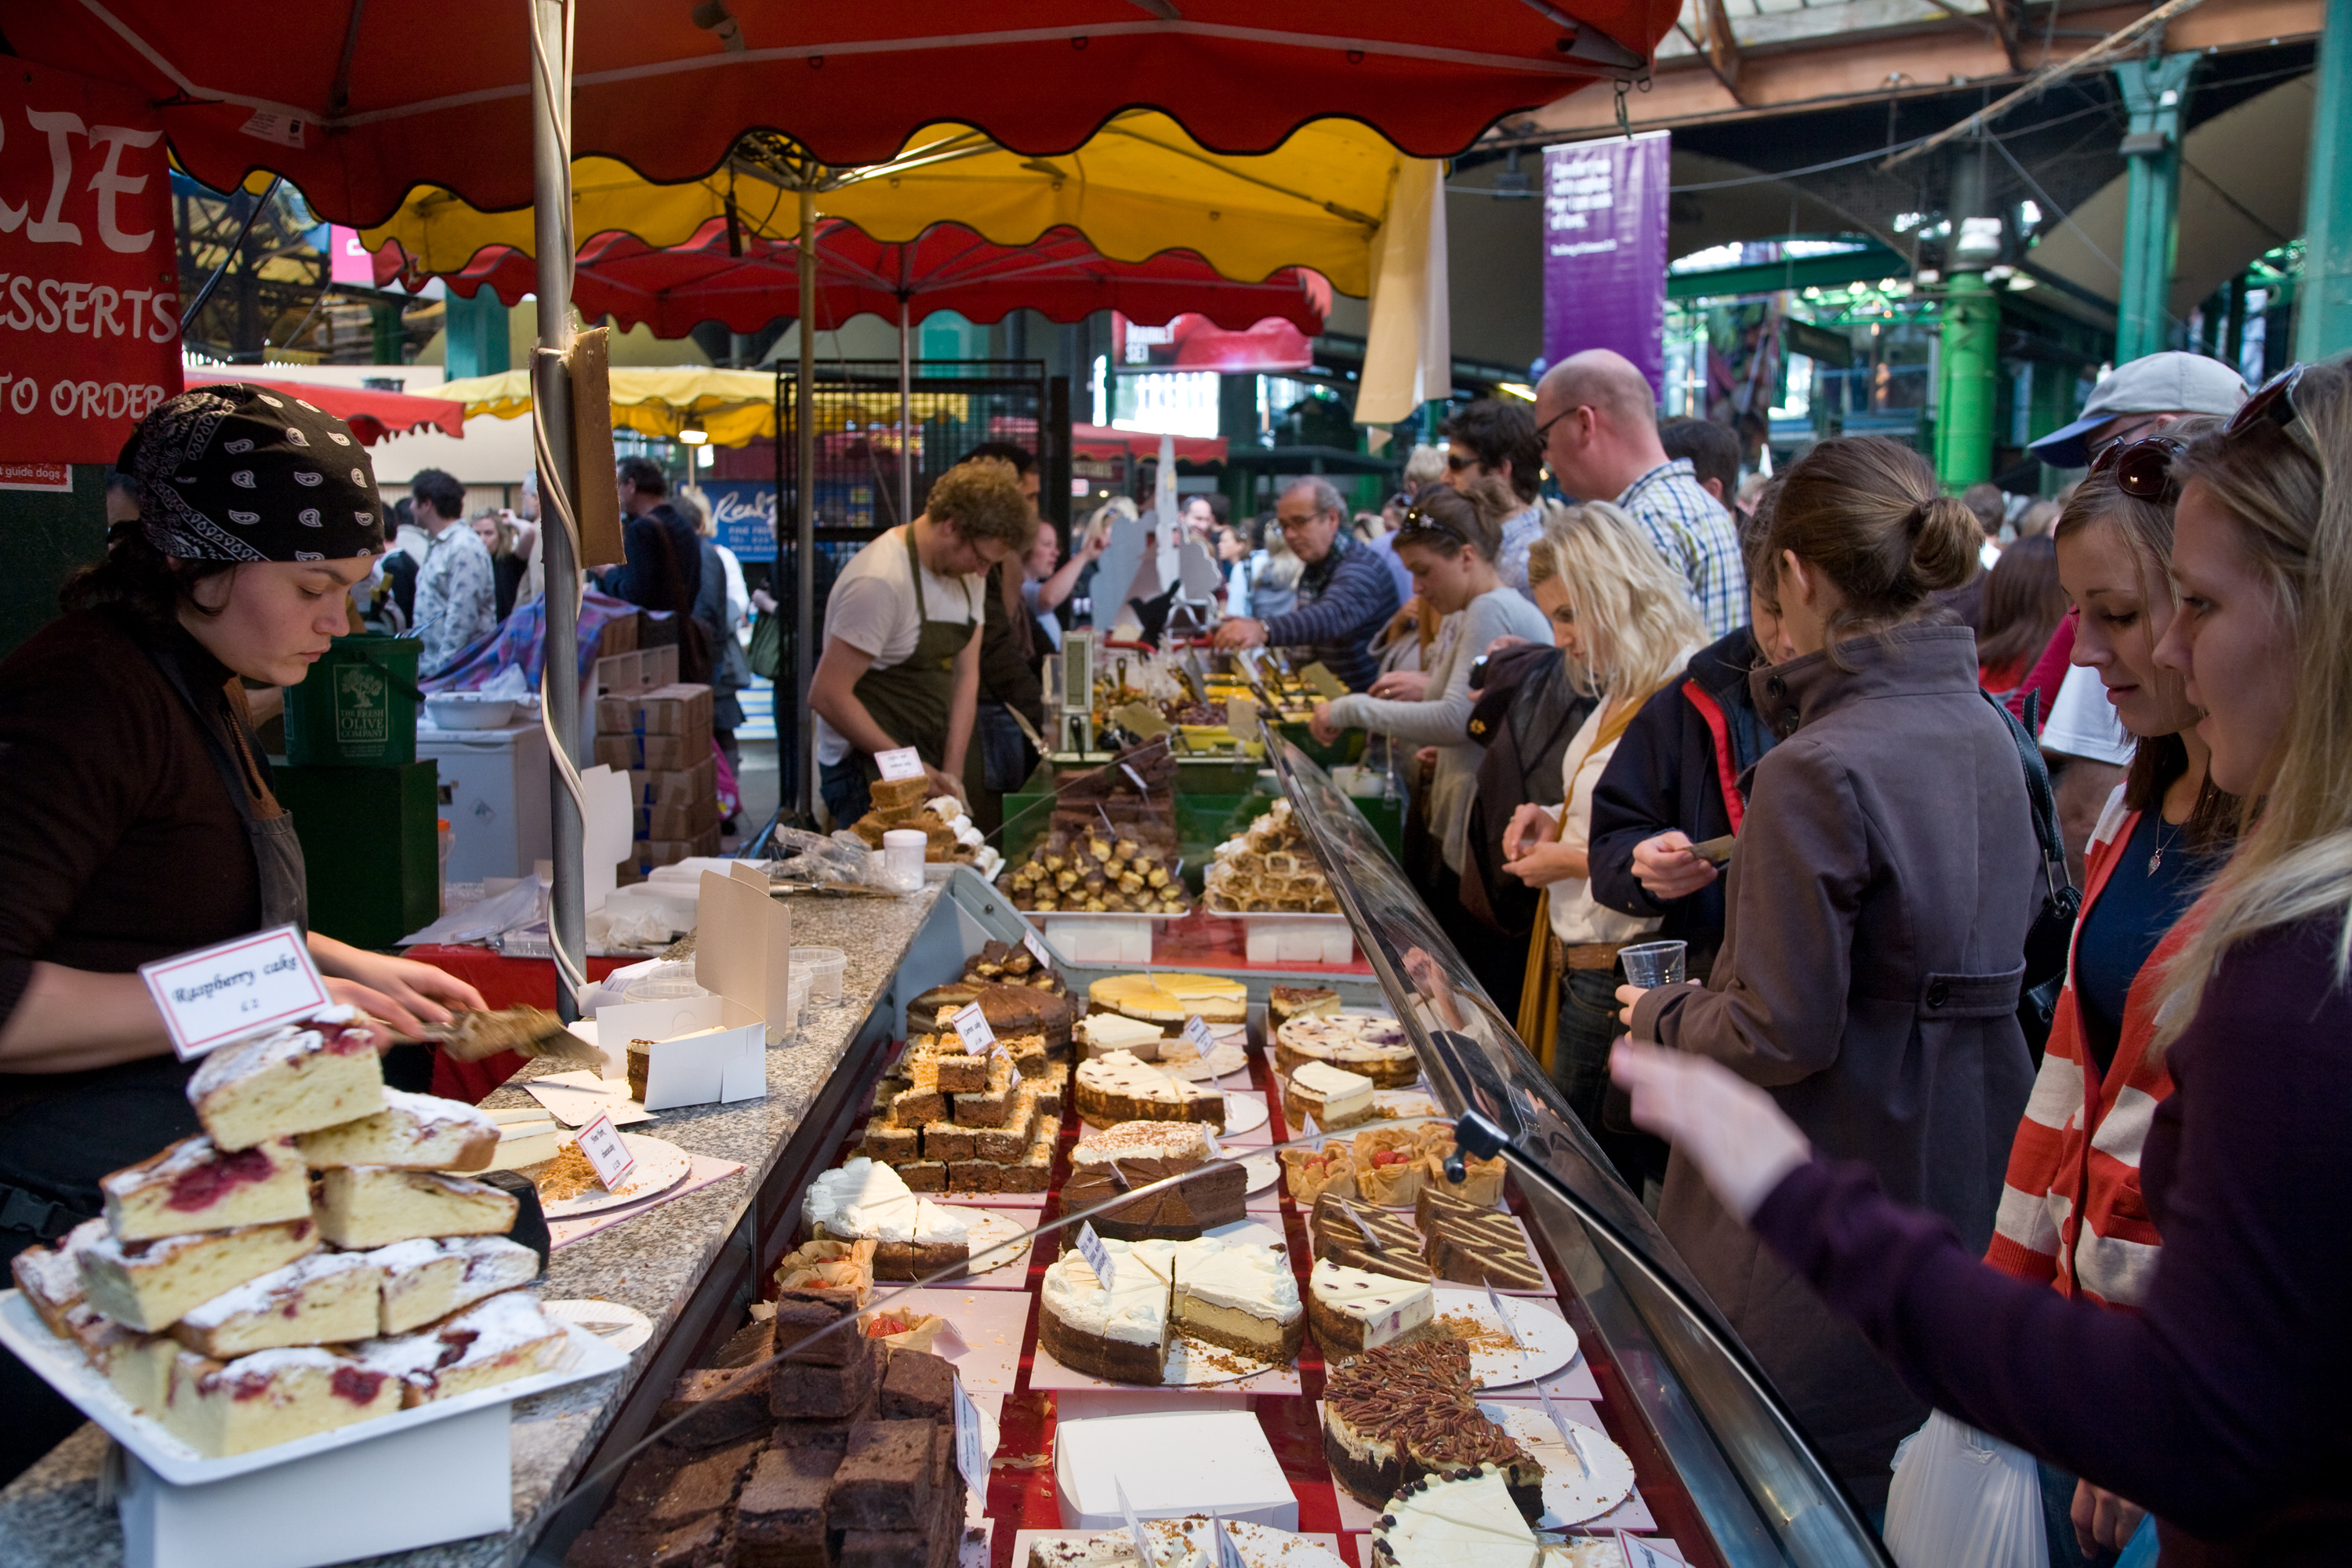 Borough_Market_cake_stall,_London,_England_-_Oct_2008